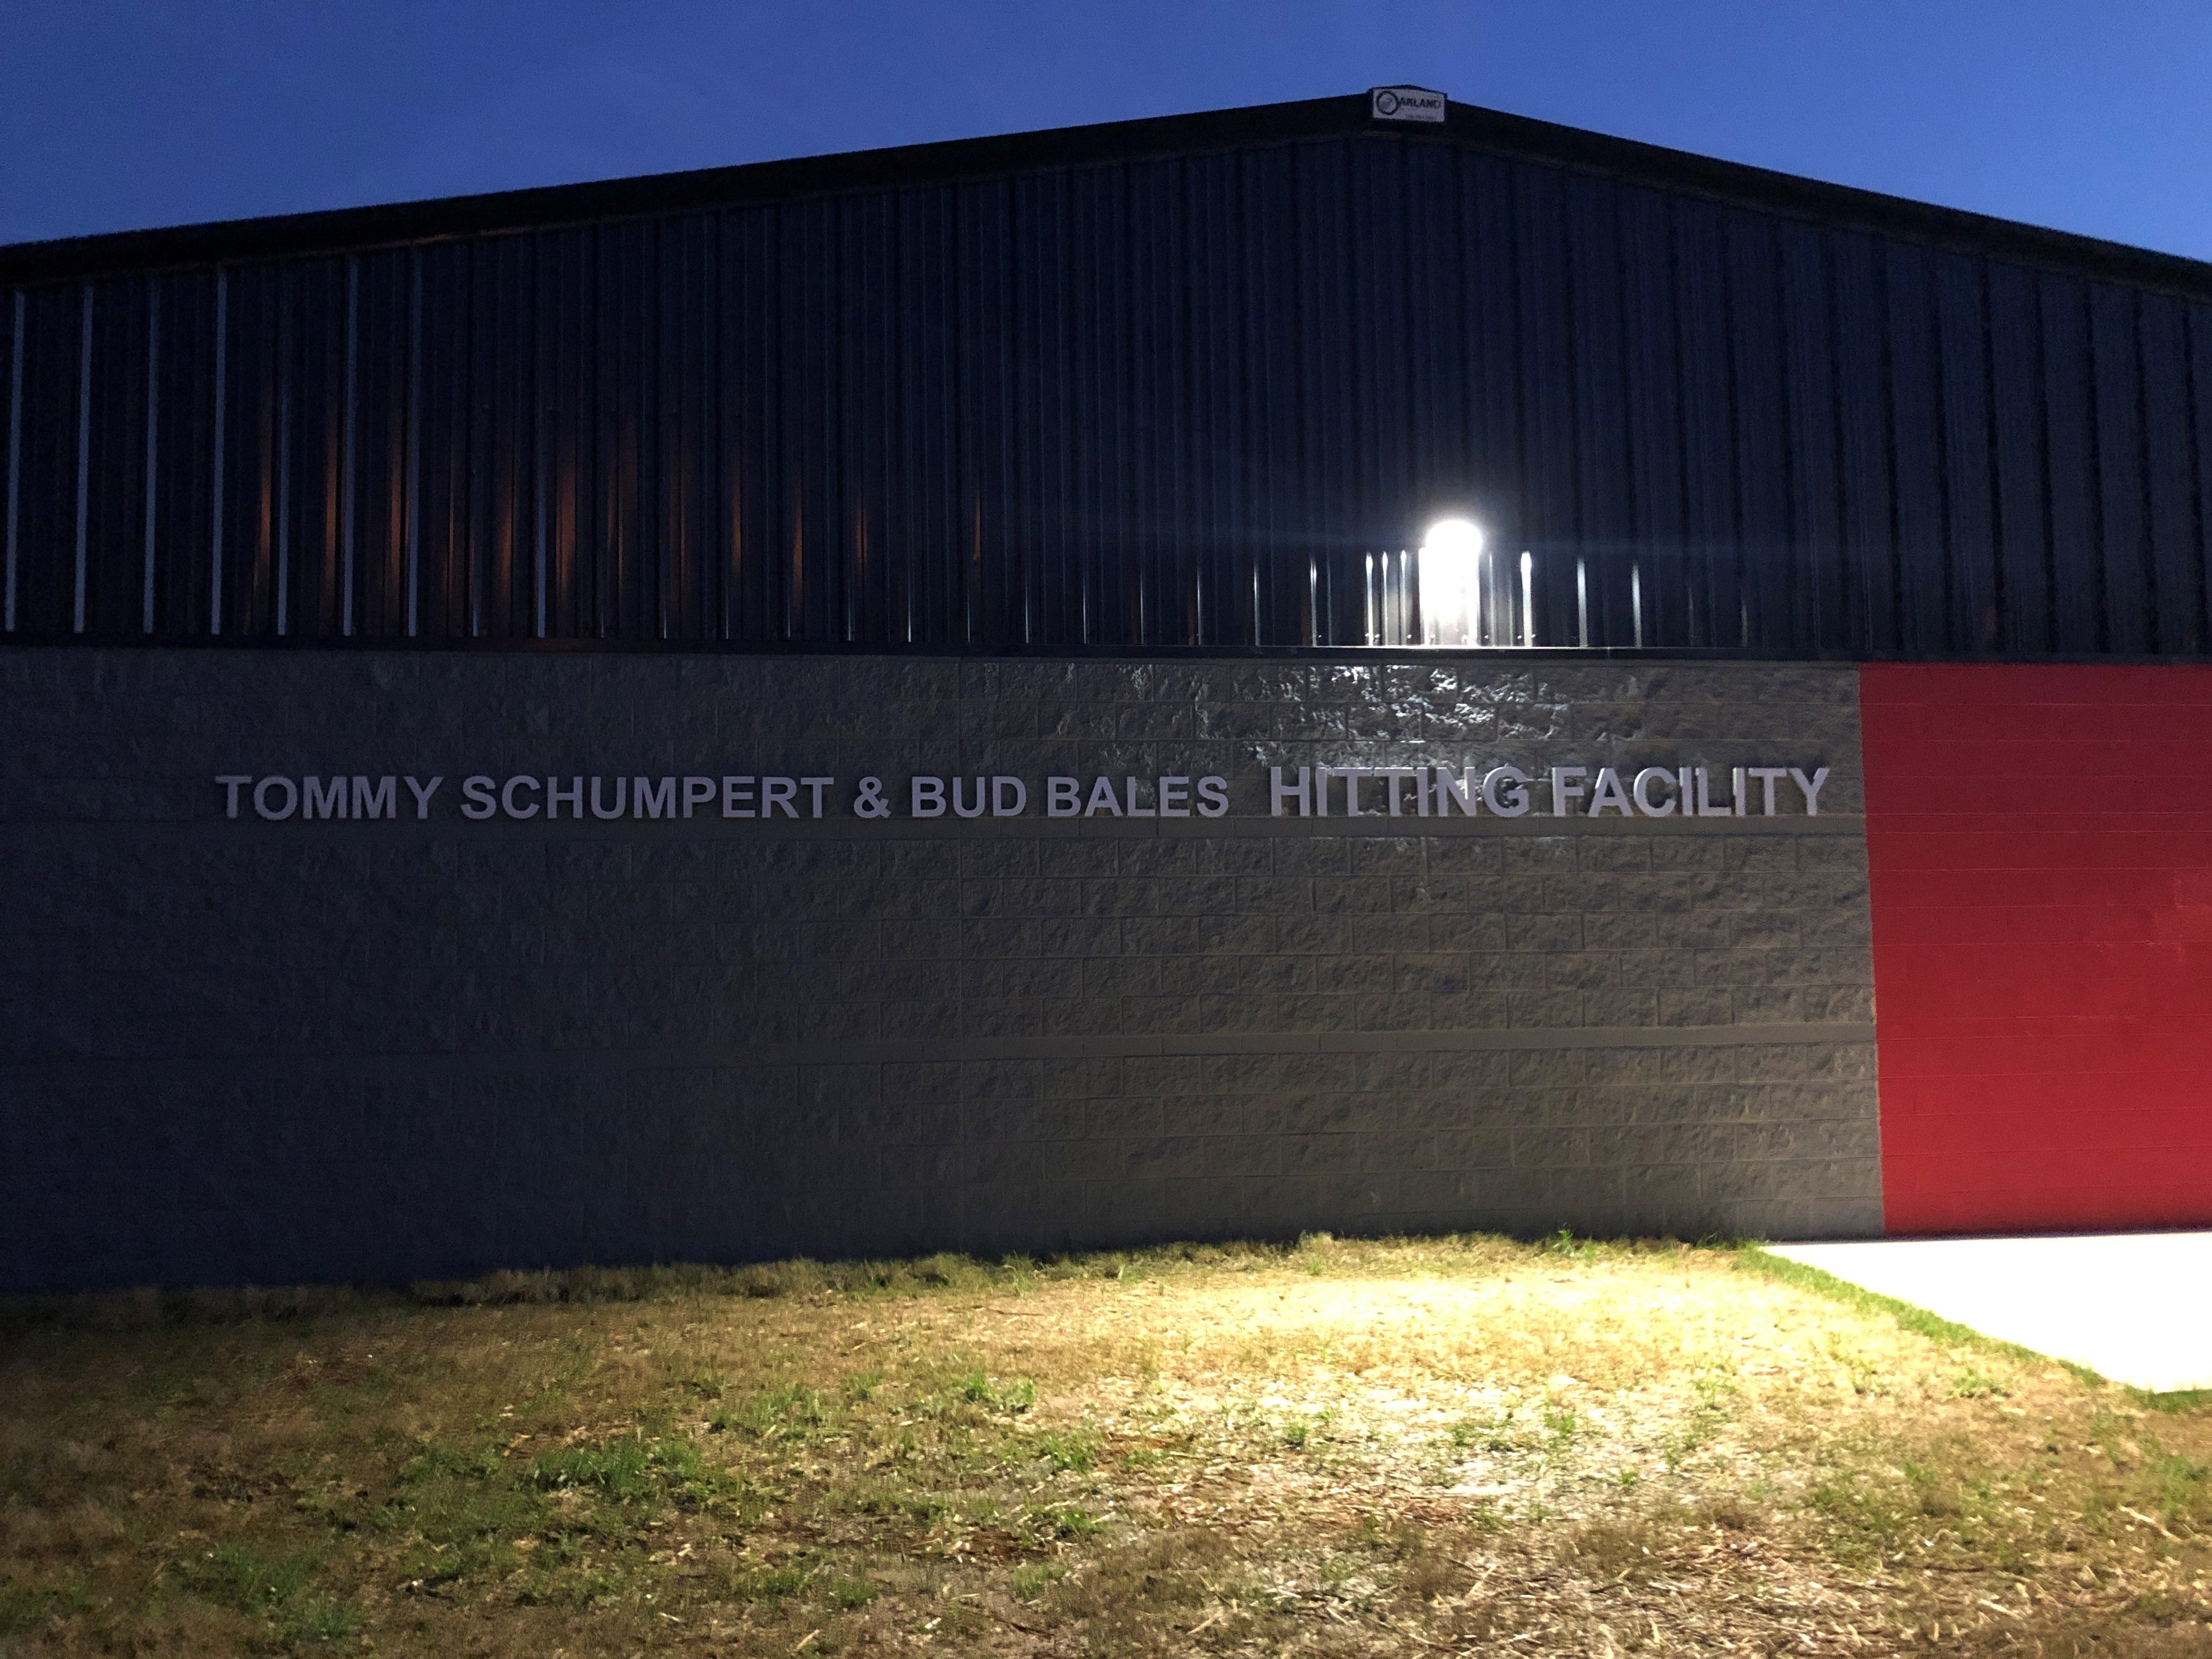 Central High School's Tommy Schumpert & Bud Bales Hitting Facility is ideal for training in the evenings and when the weather is poor.